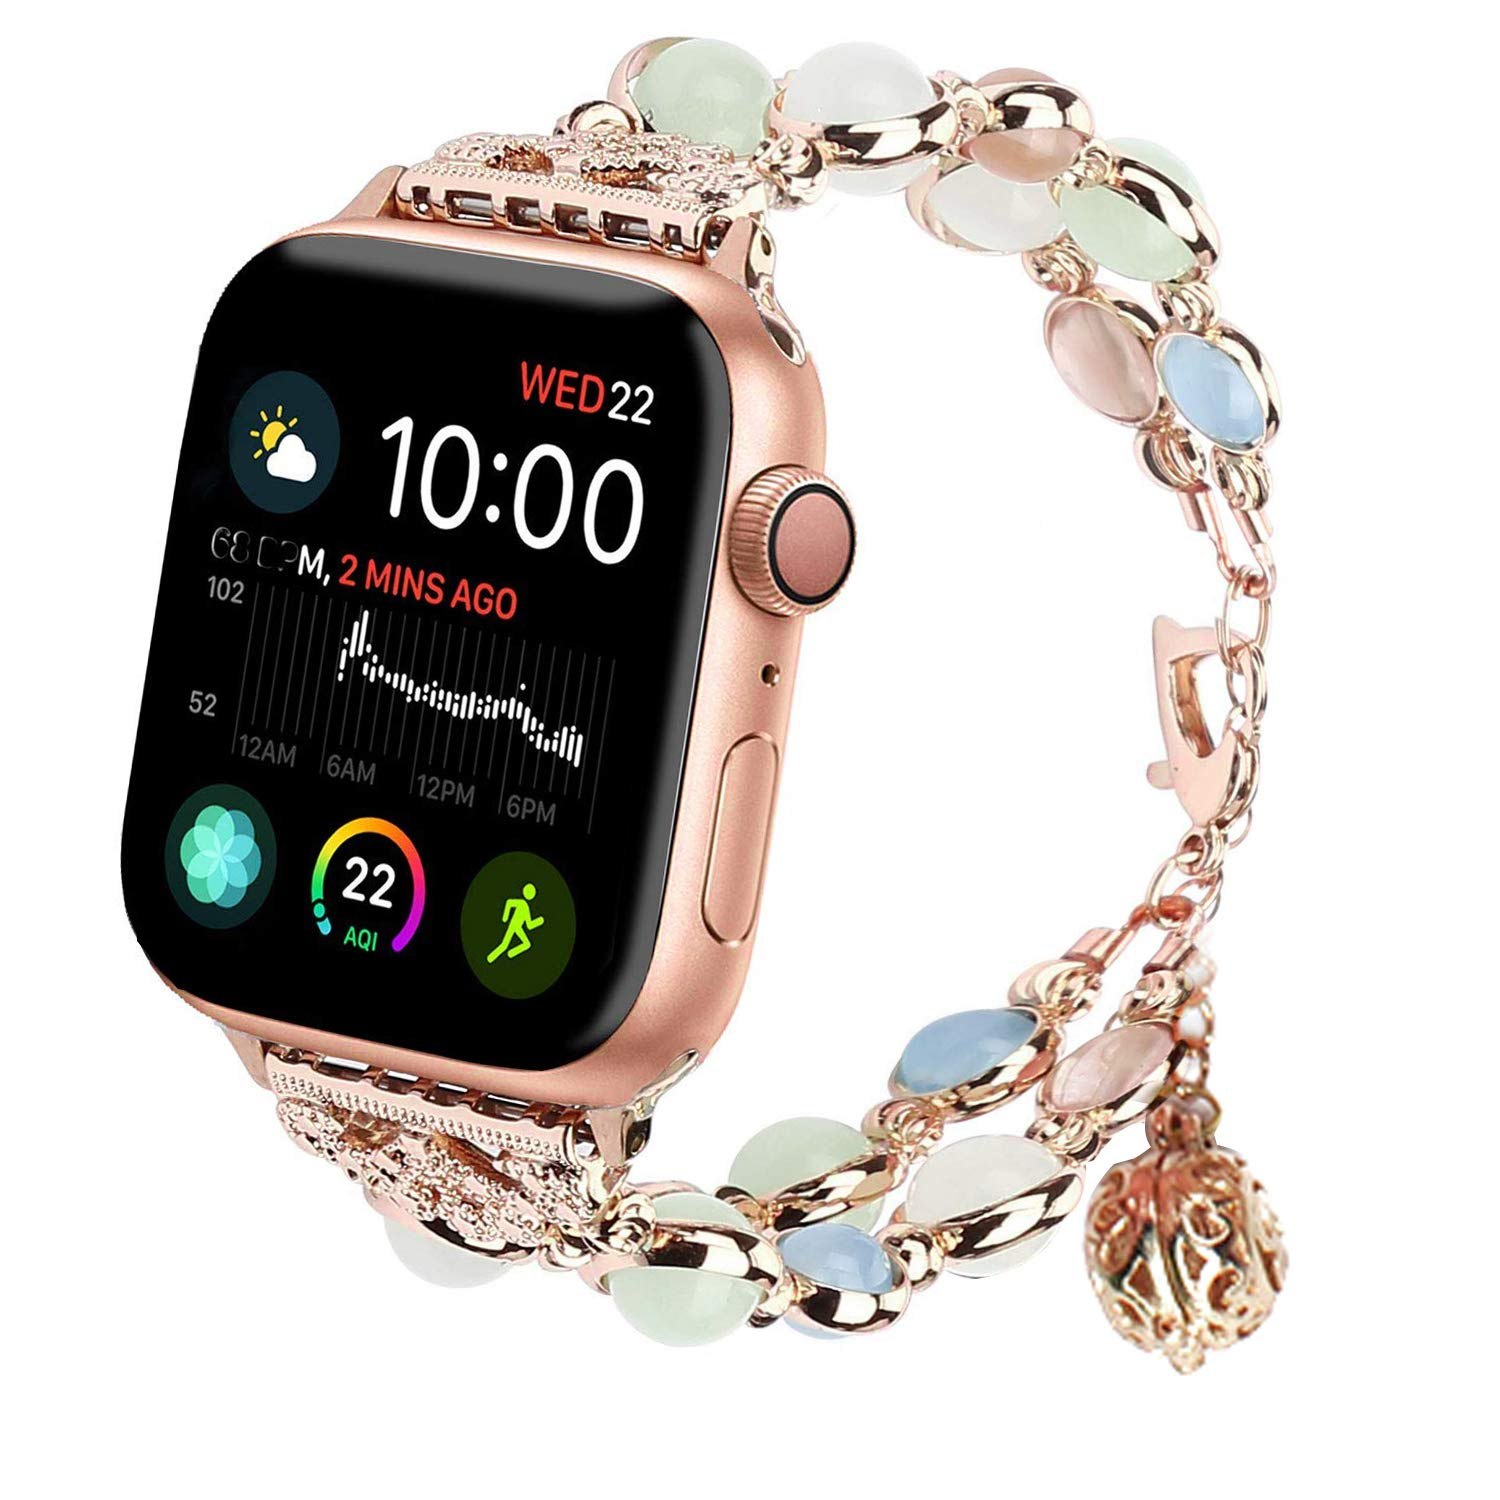 AUSXINX Bracelet for Apple Watch Band 38mm 42mm,Stainless Steel Jewelry Bangle Handmade Luminous iWatch Wristband Strap with Adjustable Fragrance ...